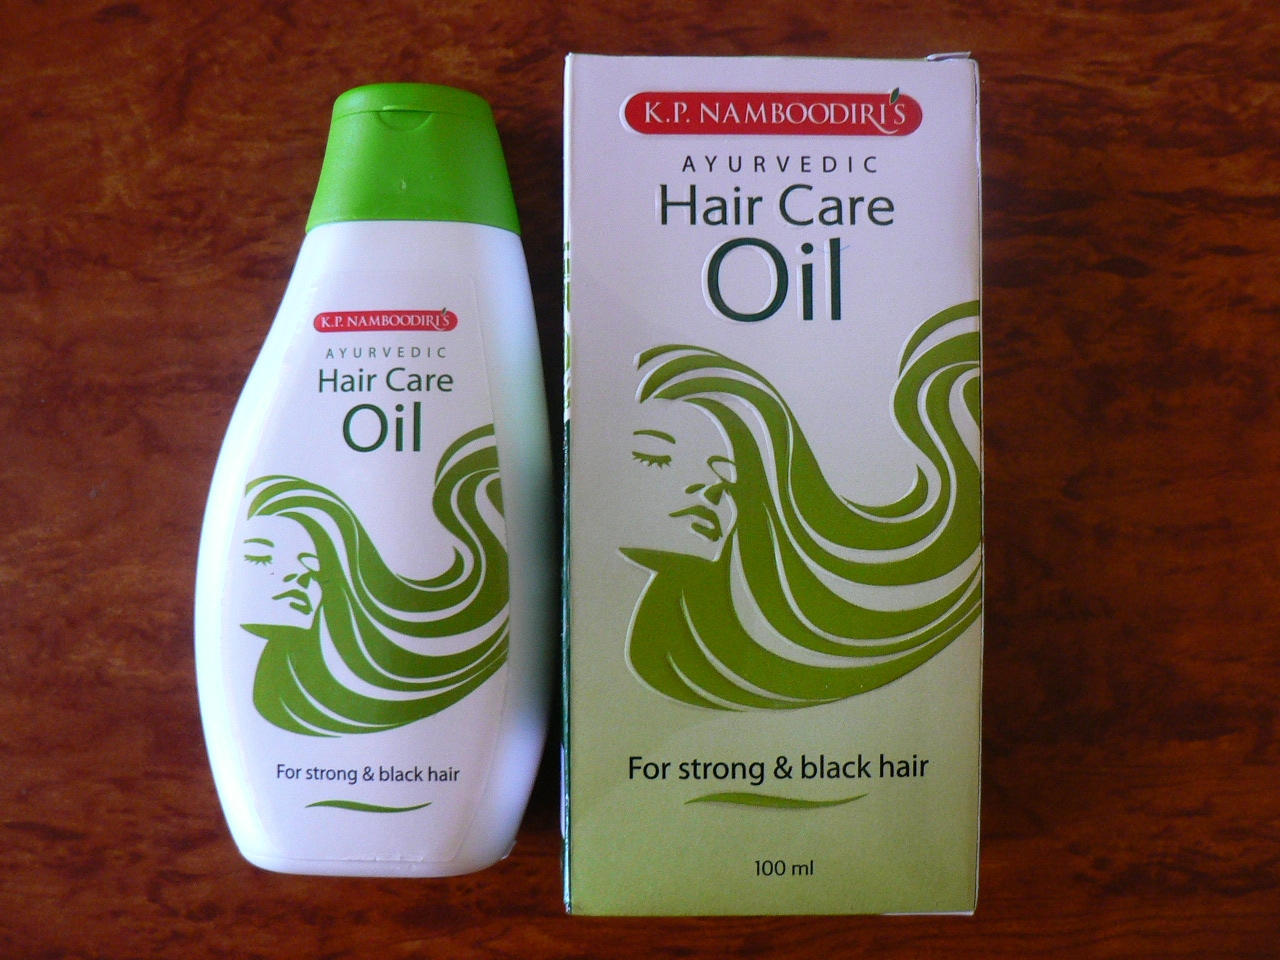 <b>HUILE AYURVEDIQUE POUR LES CHEVEUX</B><BR>KP Namboodiris<BR>Ayurvedic hair care oil<BR>100 ml